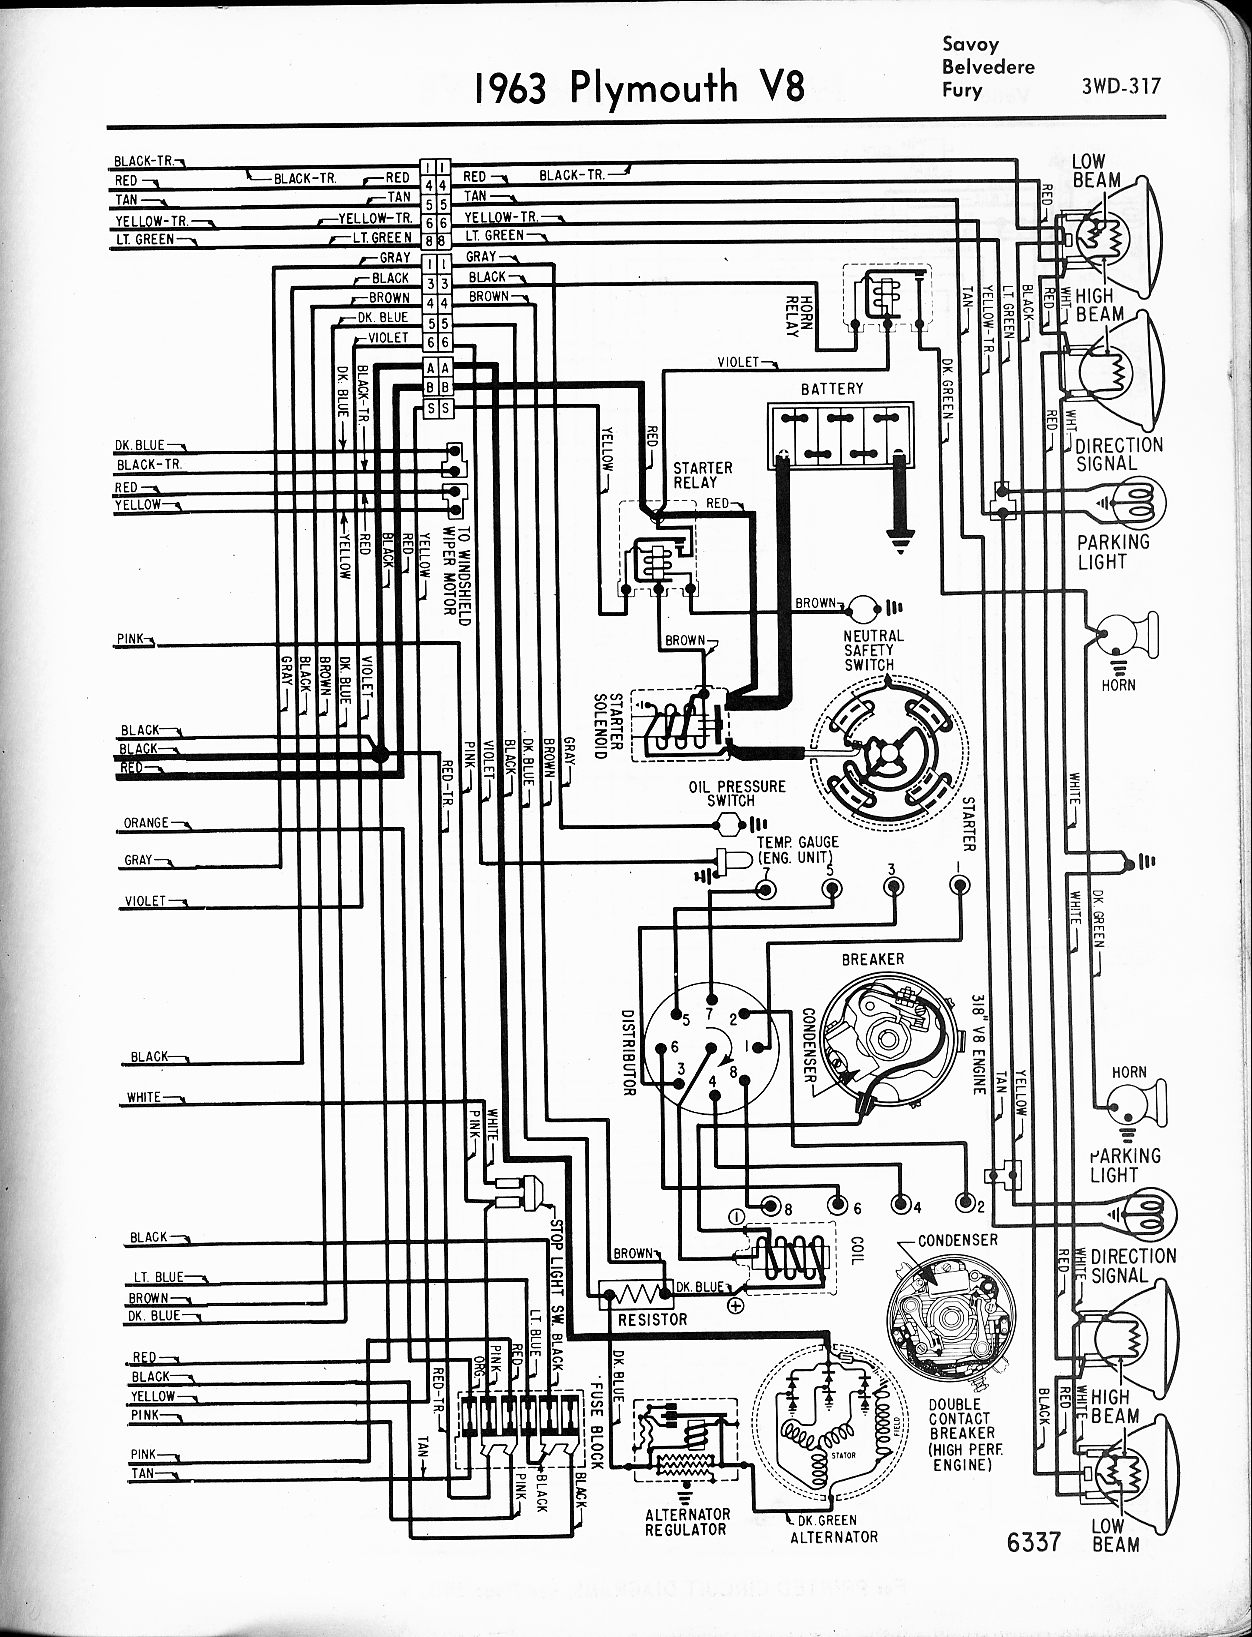 1956 Chrysler Wiring Diagram Opinions About 2004 2500 Dodge Ram 63 Plymouth Schematics Rh Mychampagnedaze Com